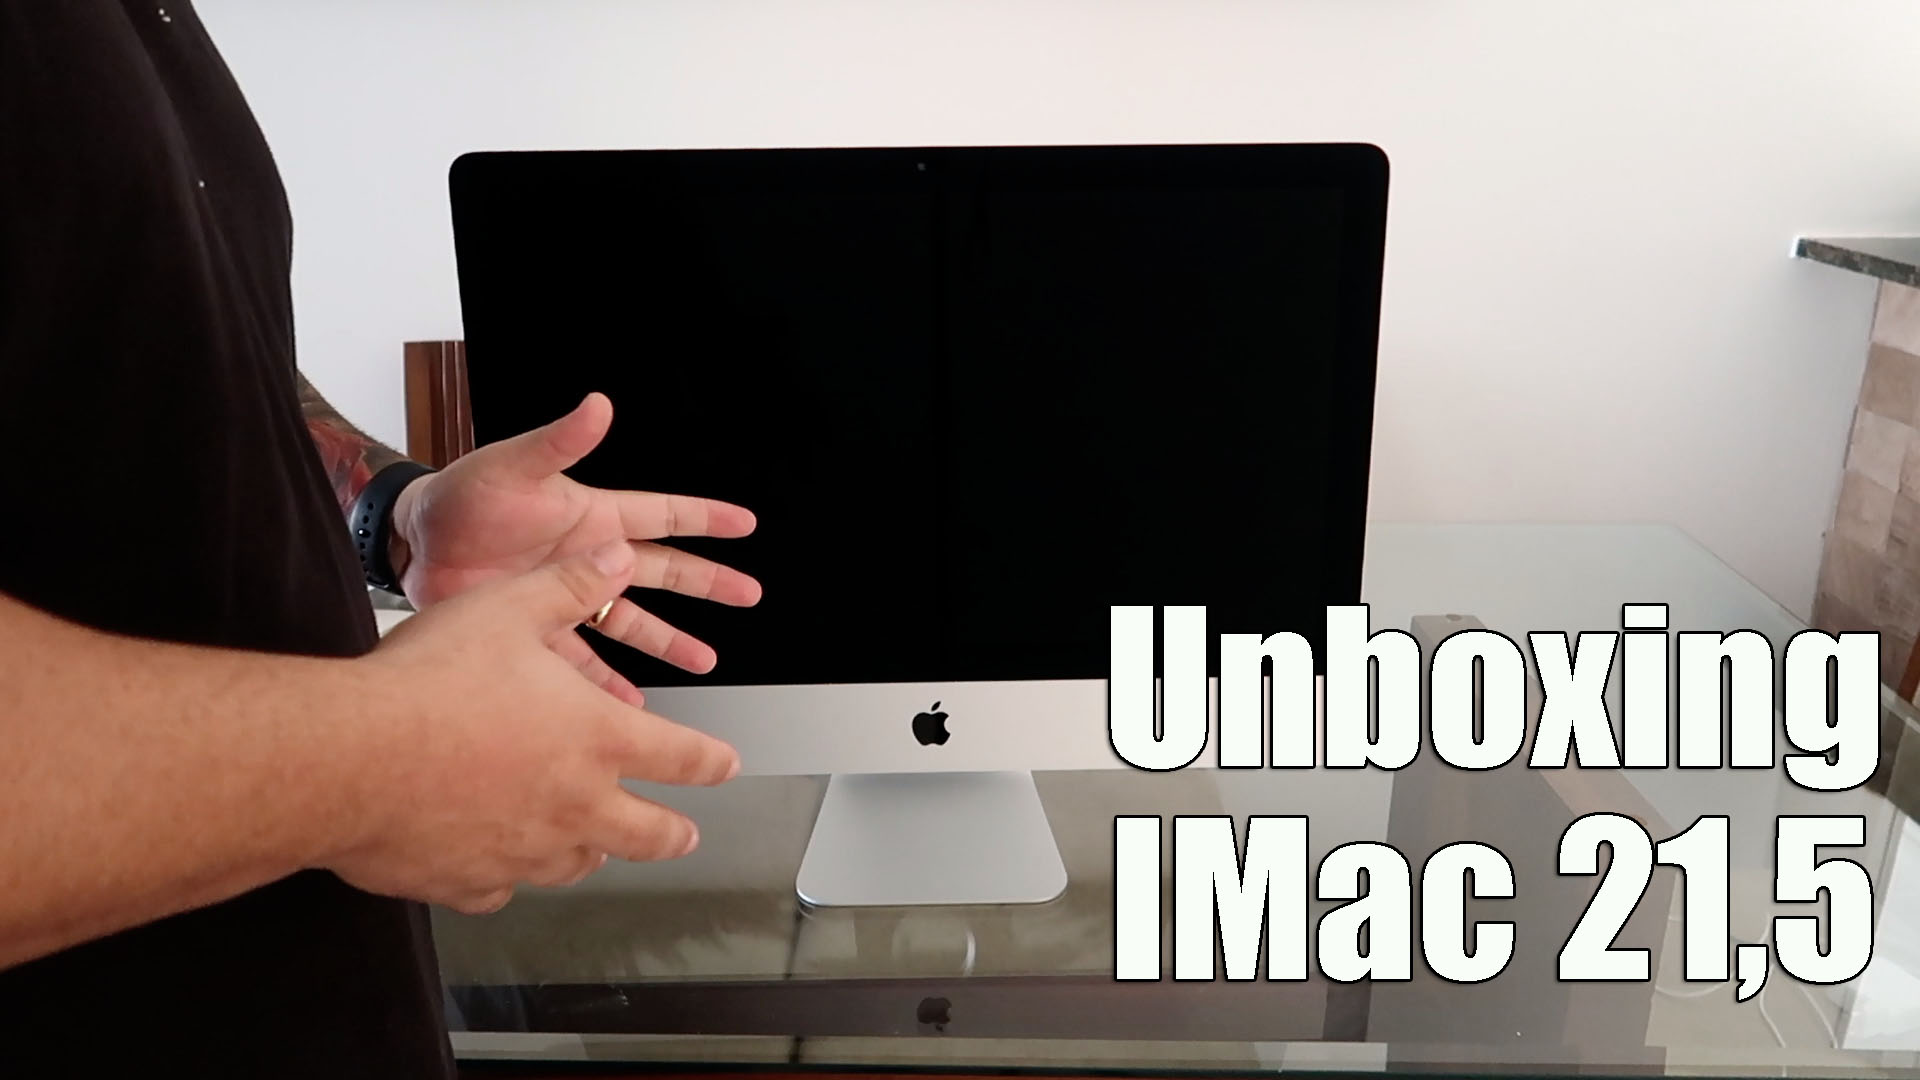 Unboxing IMac 21,5 Portugues 2020 – Vídeo